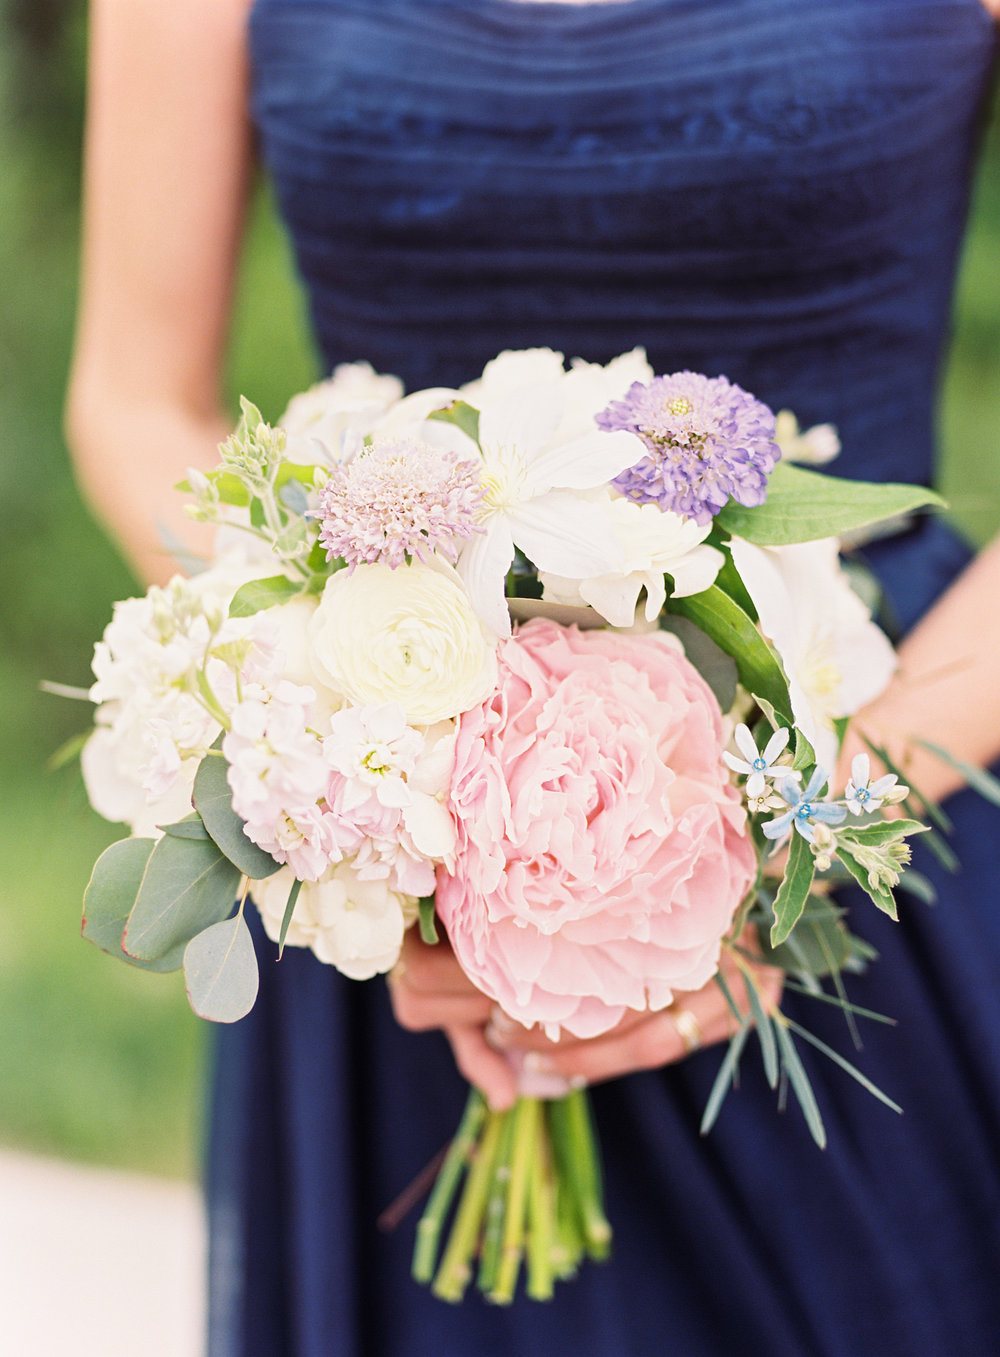 Flowers by Lace and Lilies, wedding flowers, bridesmaid flowers, bridesmaid bouquets, blush wedding, green and white wedding, green and white flowers, navy gowns, blush flowers, lavender flowers